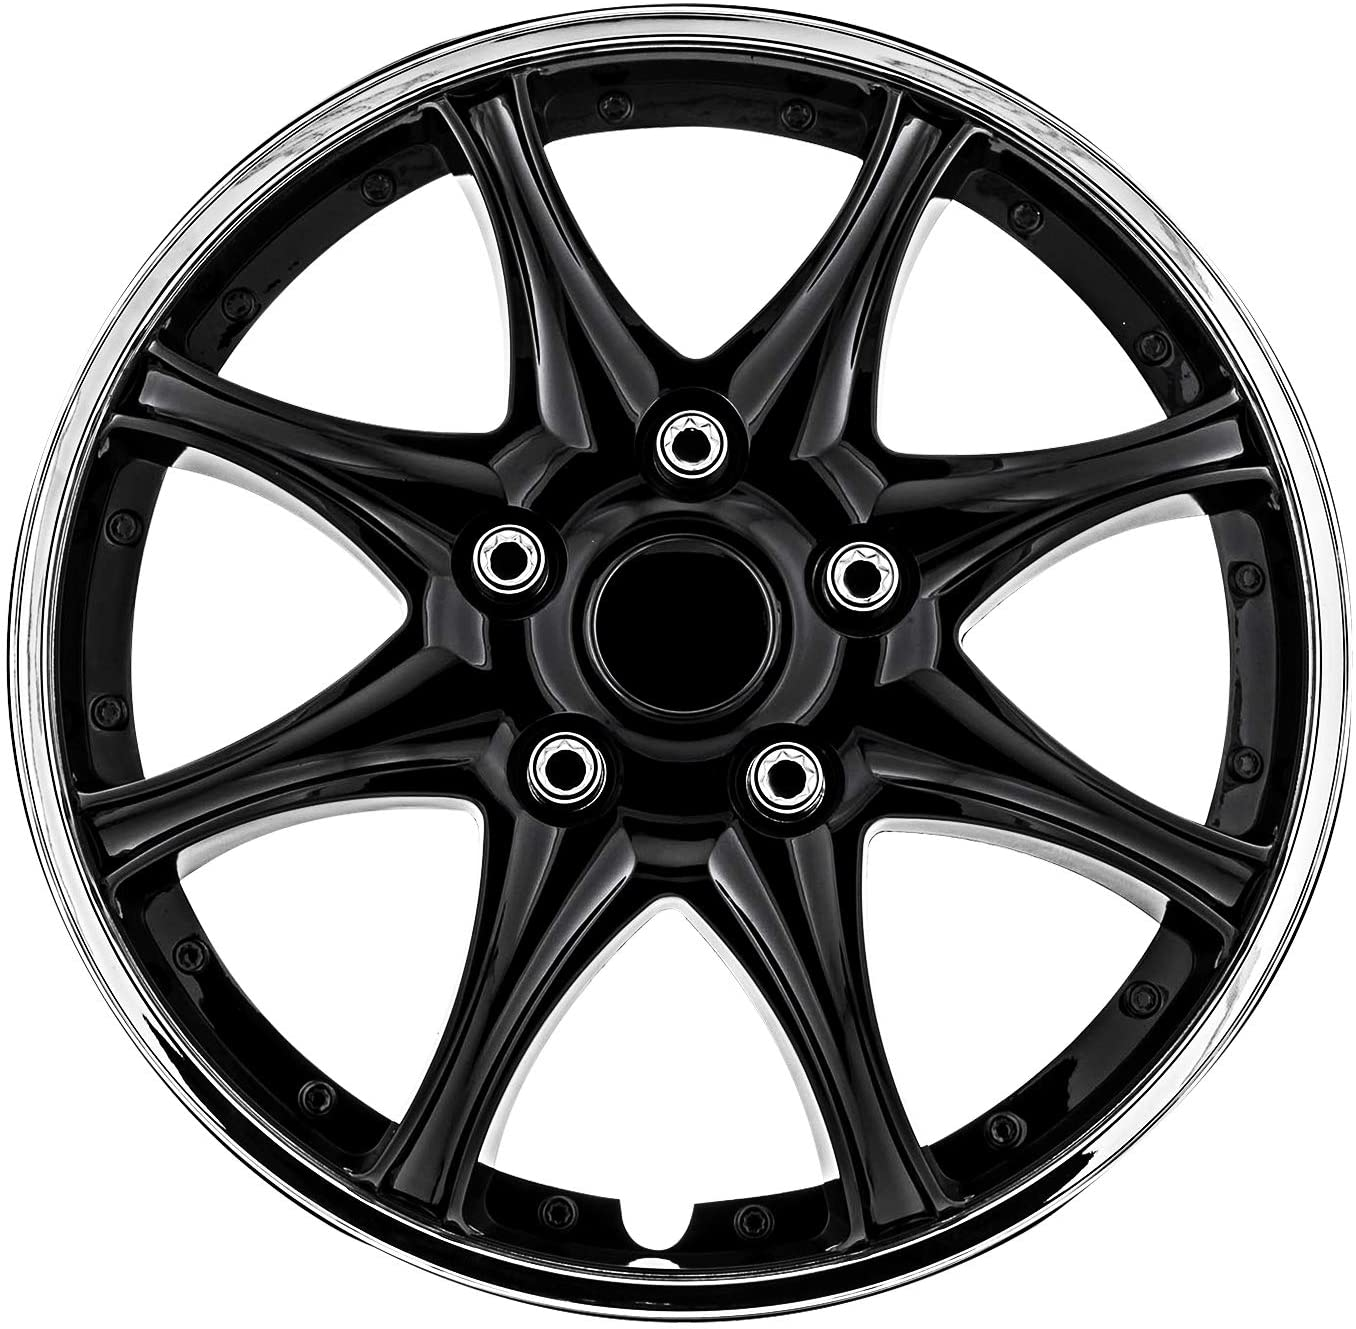 Pilot WH522-15C-B Universal Fit Black and Chrome 15 Inch Wheel Covers - Set of 4